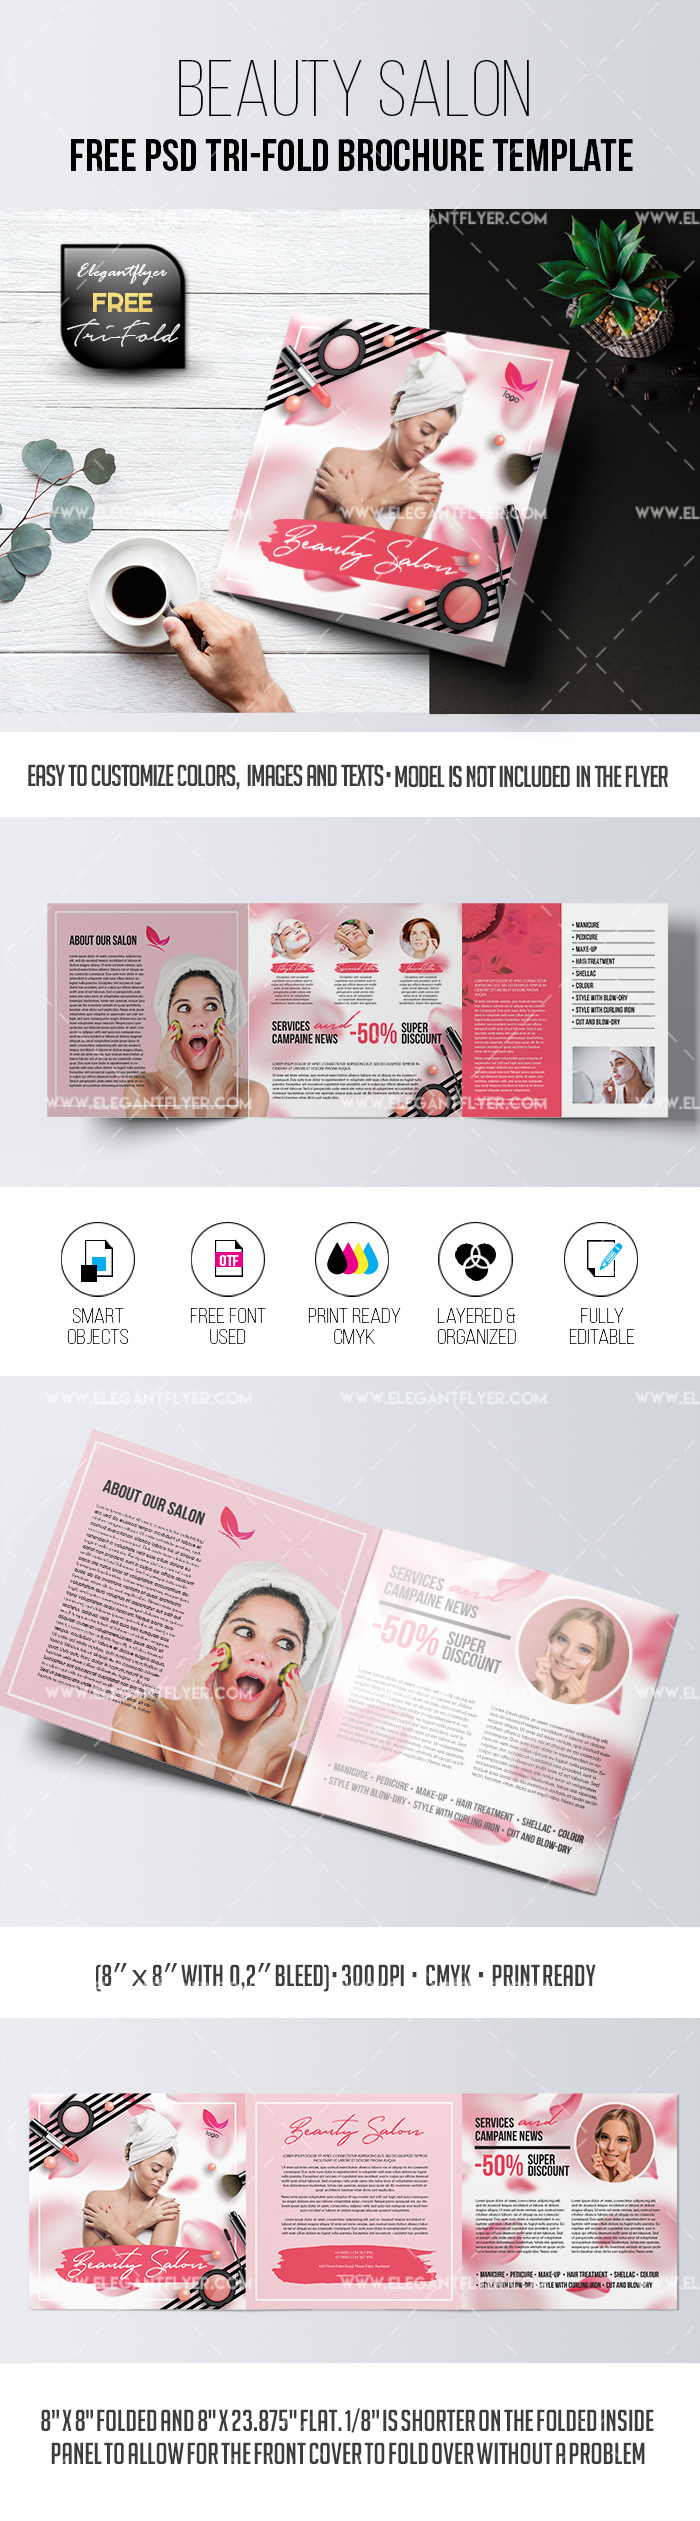 Beauty Salon – Free PSD Tri-Fold Brochure Template